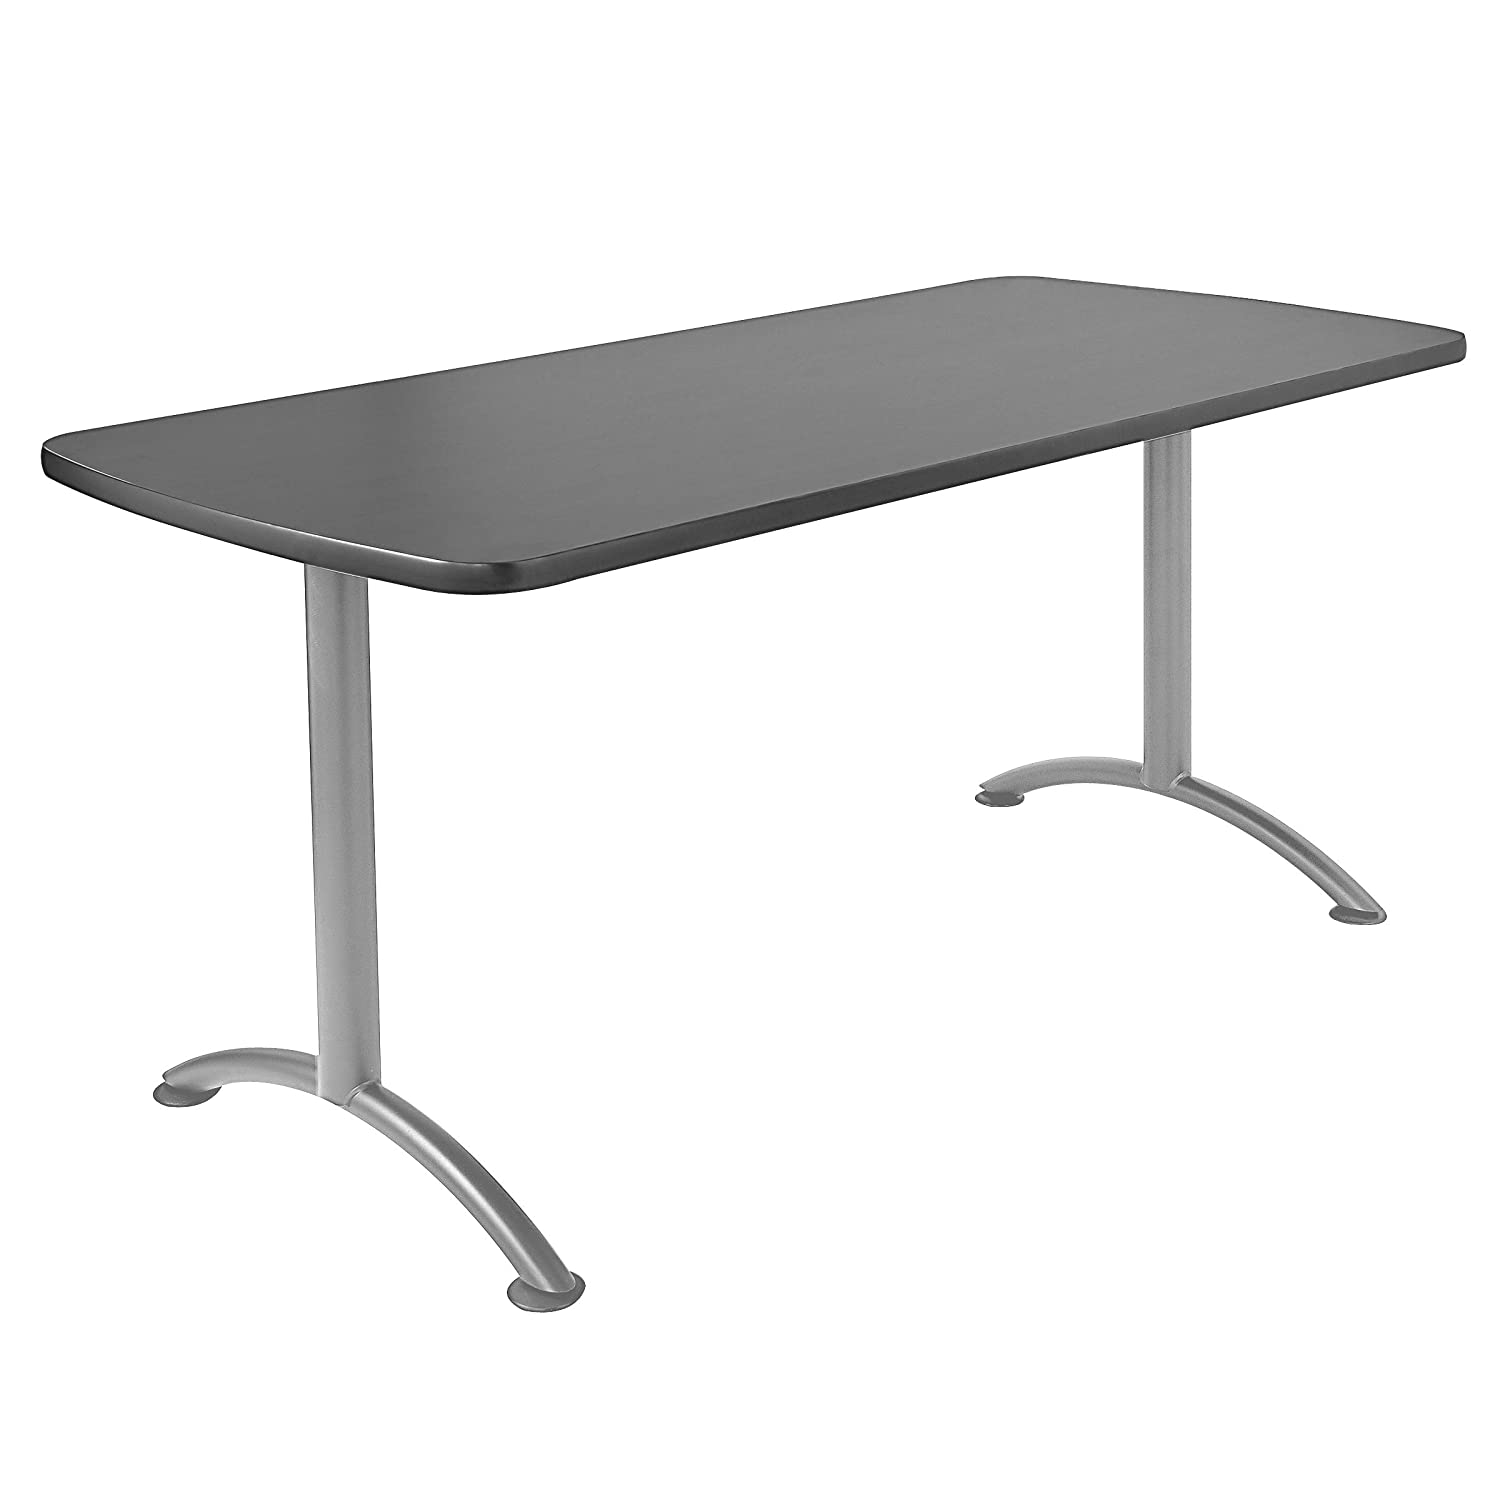 """Iceberg ICE69217 ARC 5-foot Rectangular Conference Table, 30"""" x 60"""", Graphite/Silver Leg : Office Products"""